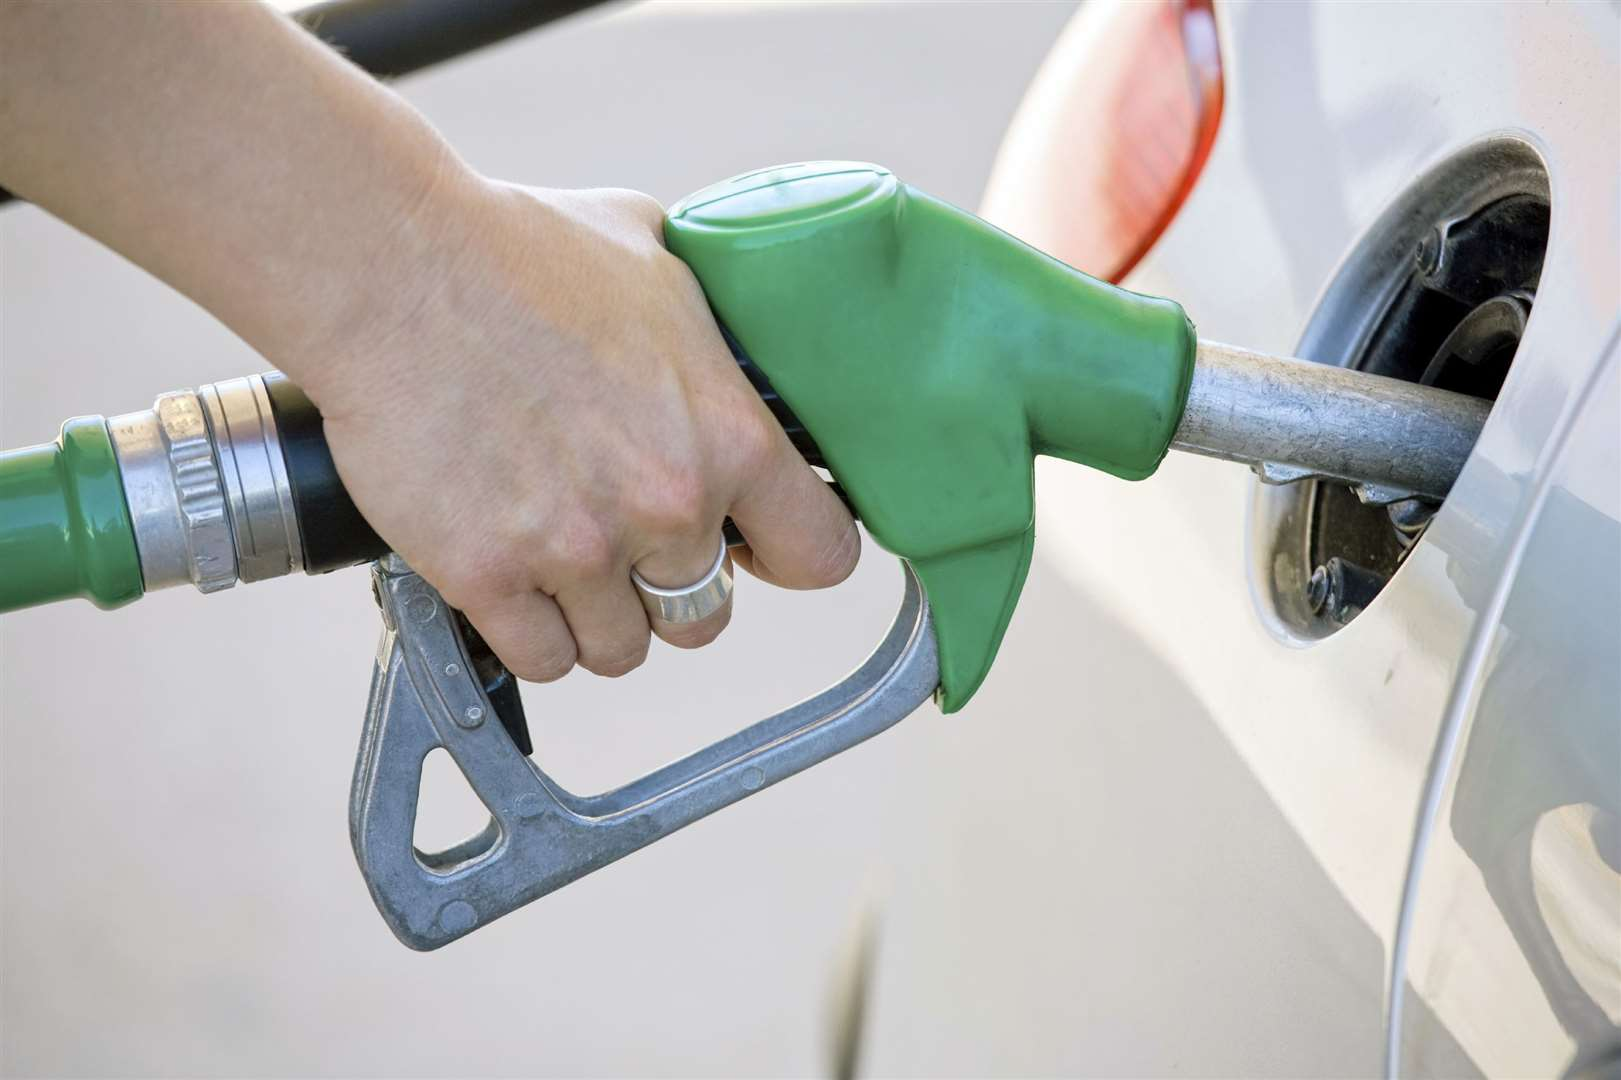 Kevin Carr was charged with more than 20 fuel-related offences. Photo by: istock.